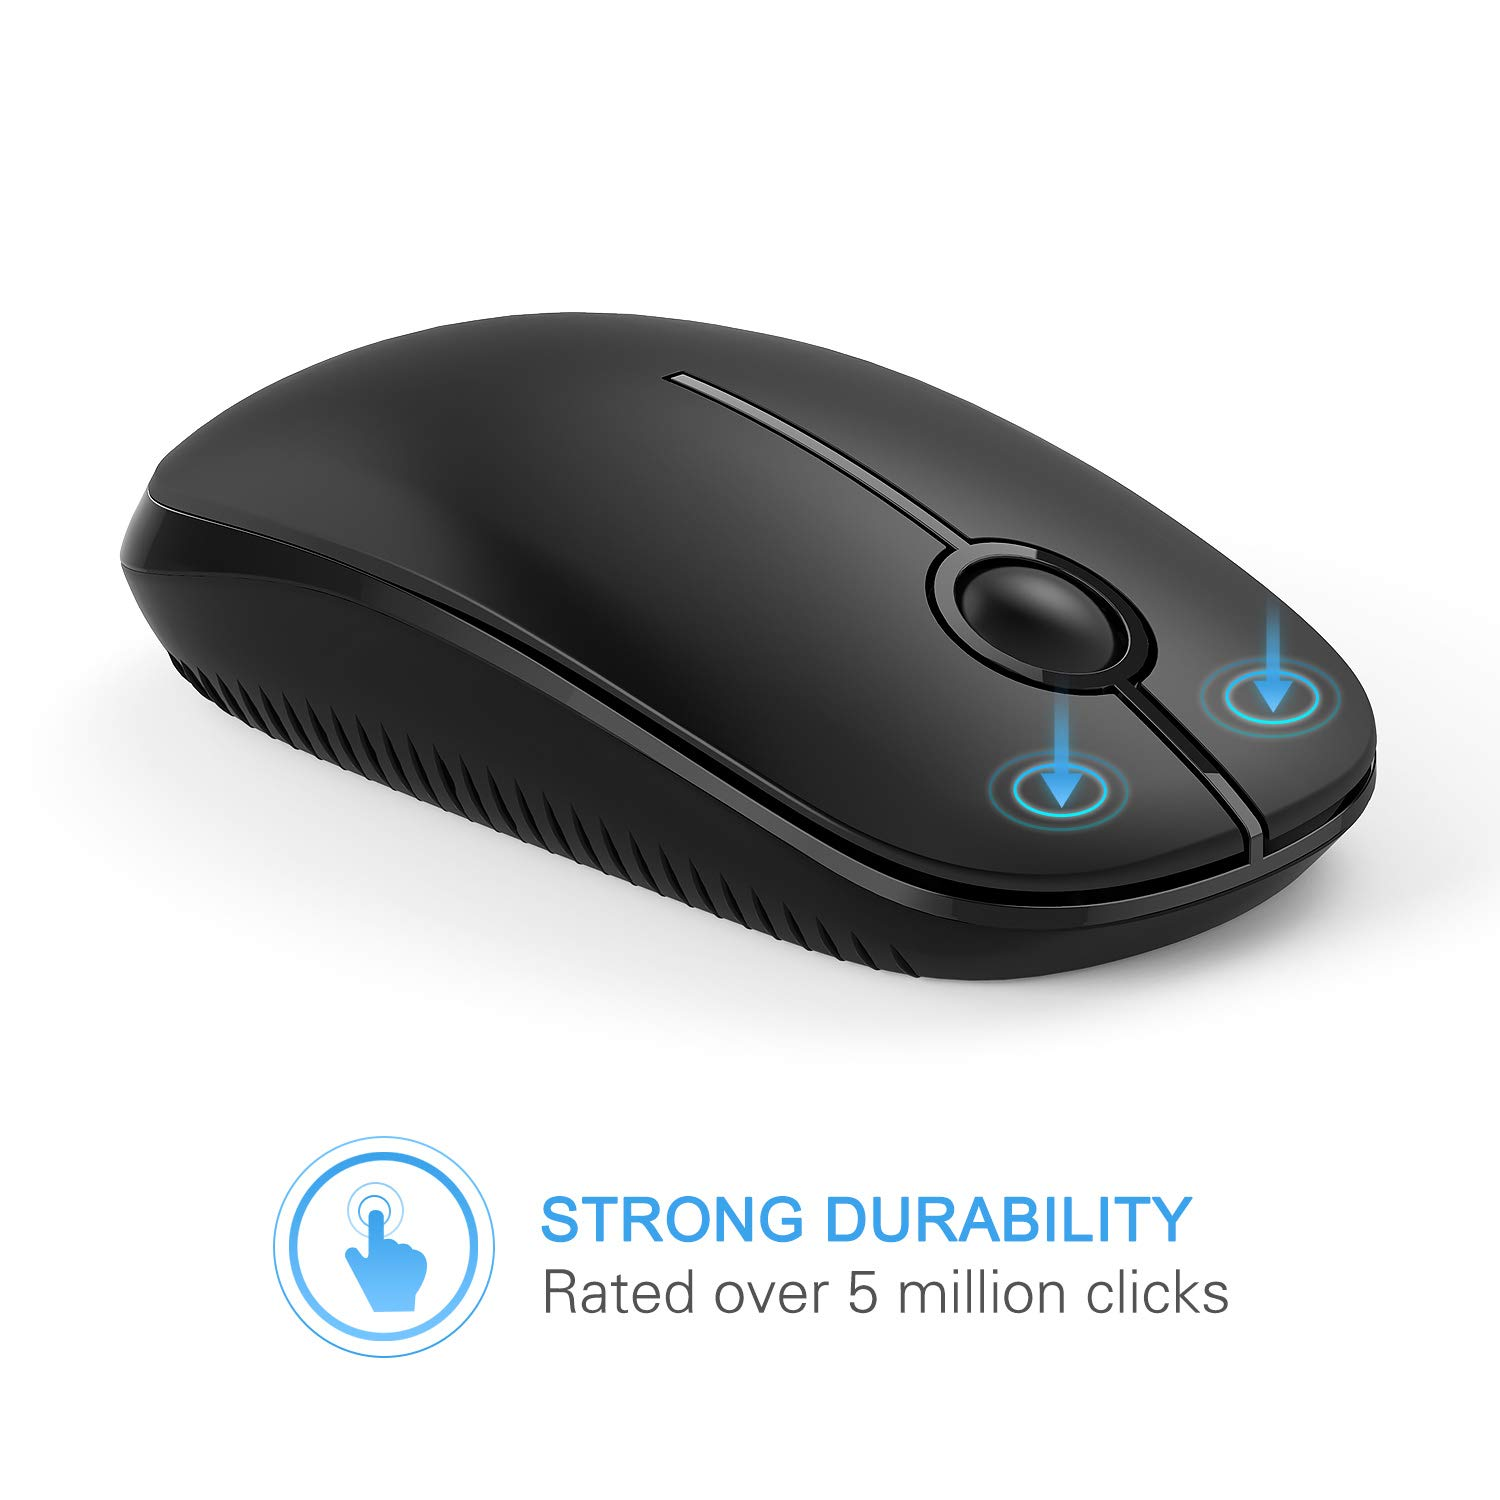 Black Jelly Comb Wireless Mouse Slim Portable 2.4G Mouse for Laptop Computer PC